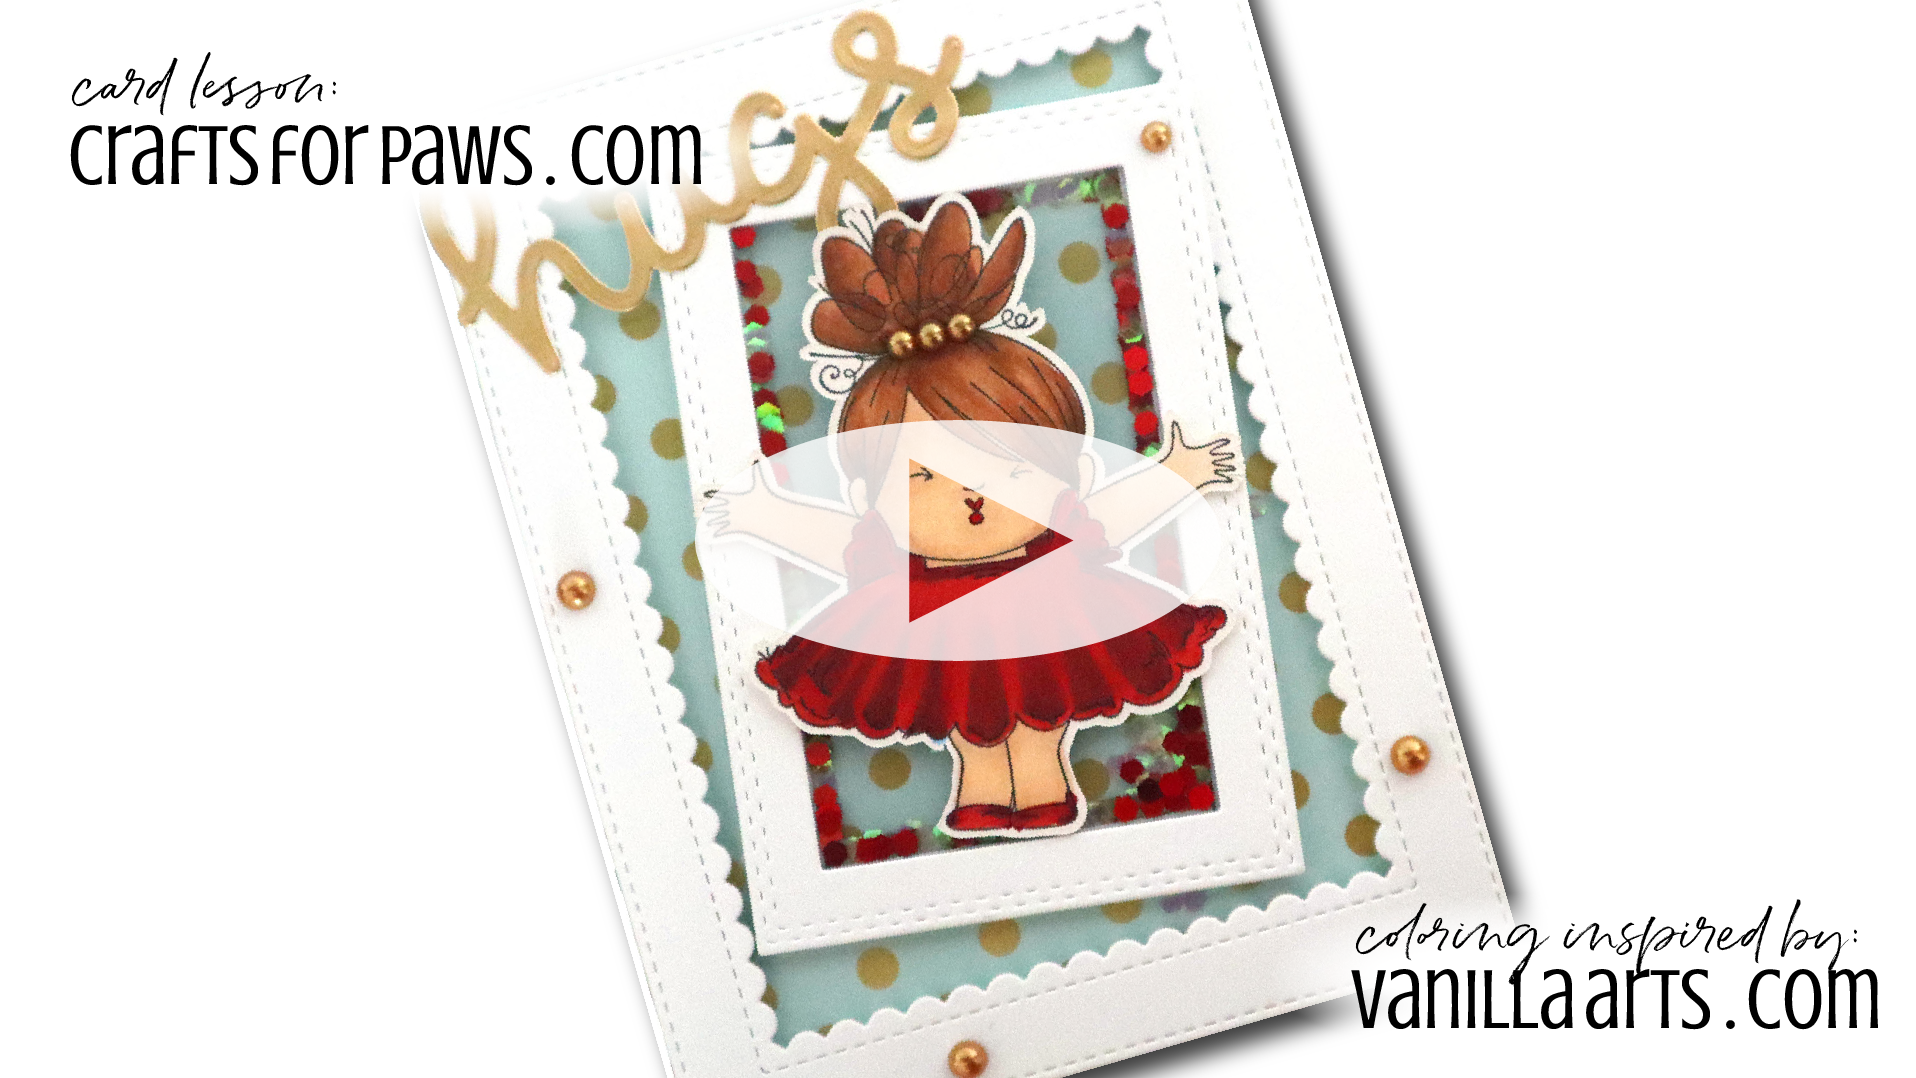 """Hugs & Kisses"" Spotlight Card. Learn to make cards that do not steal the spotlight from your amazing coloring. Perfect for realistic coloring projects using Copic Markers or colored pencils. Featuring Elena Cazares of Crafts for Paws.